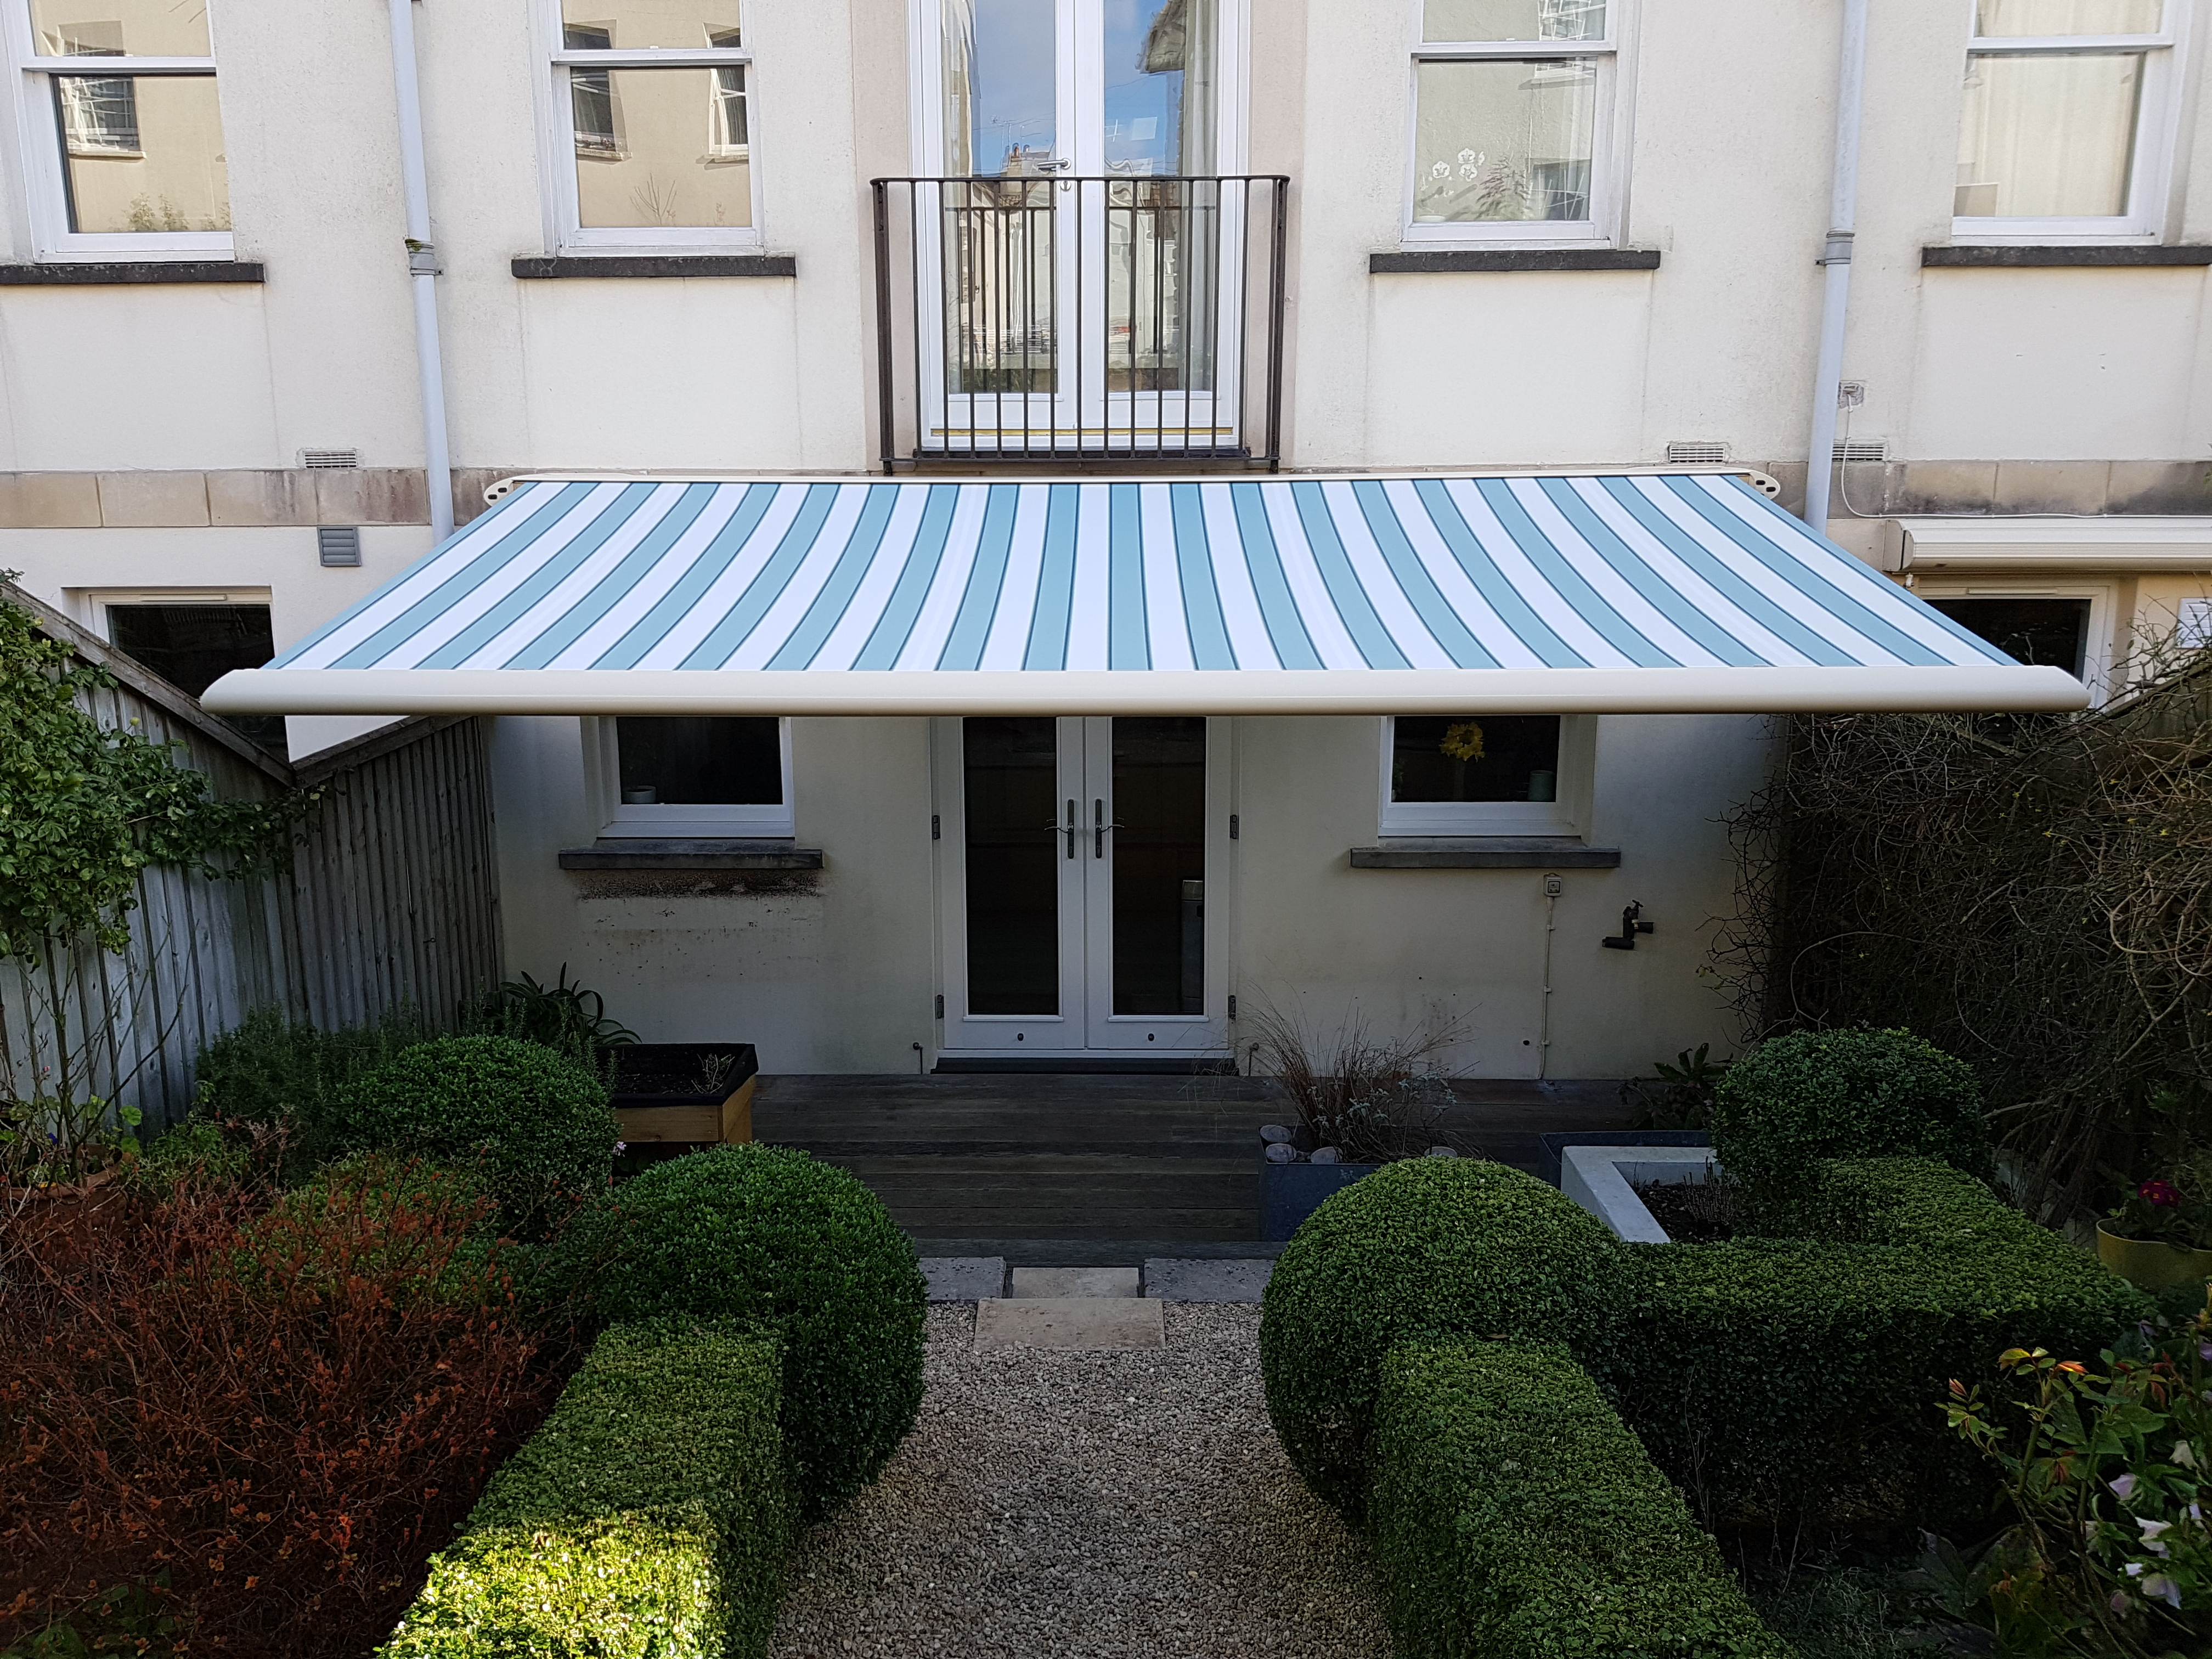 Andy Whitehead awning - no job details 7